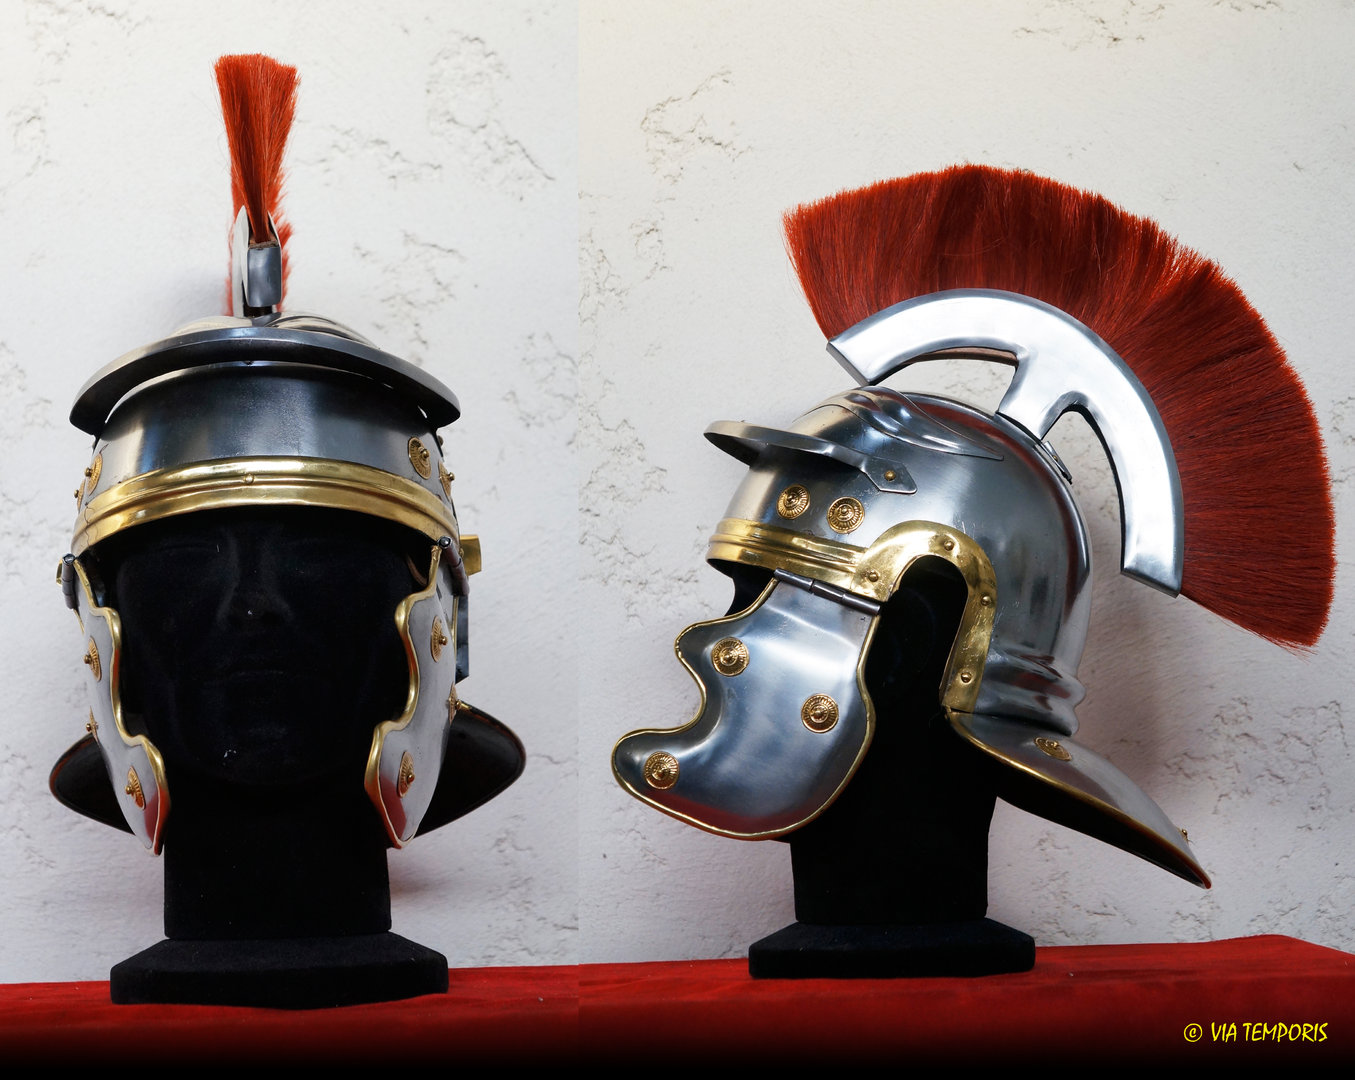 ROMAN IMPERIAL GAUL HELMET WITH RED CREST - (MODEL II)